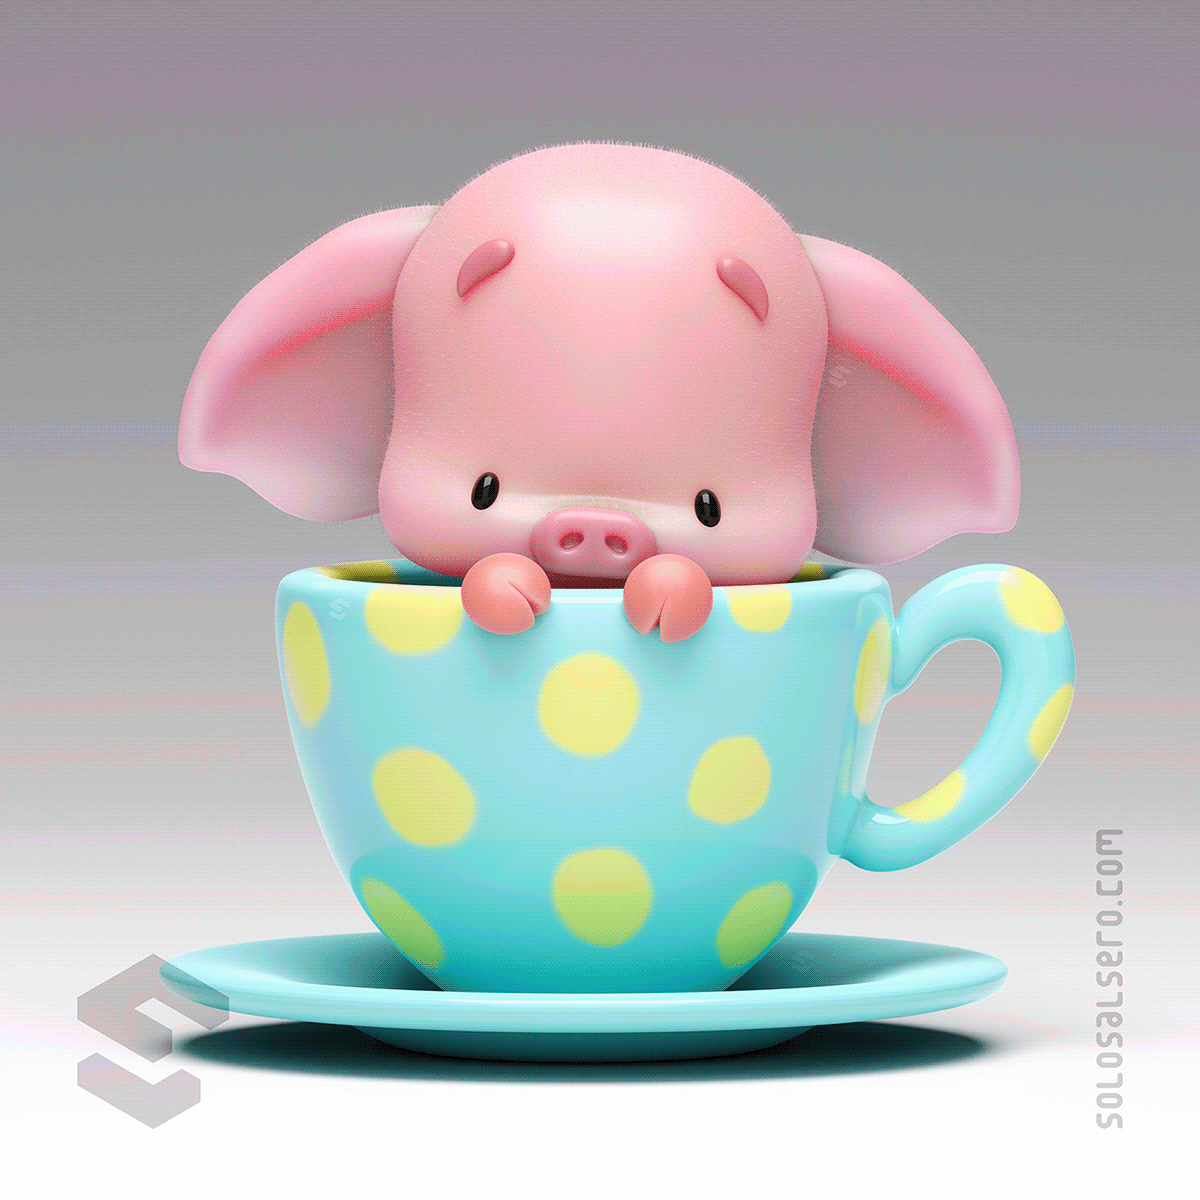 3D,blender,c4d,Character,cute,design,model,piggy